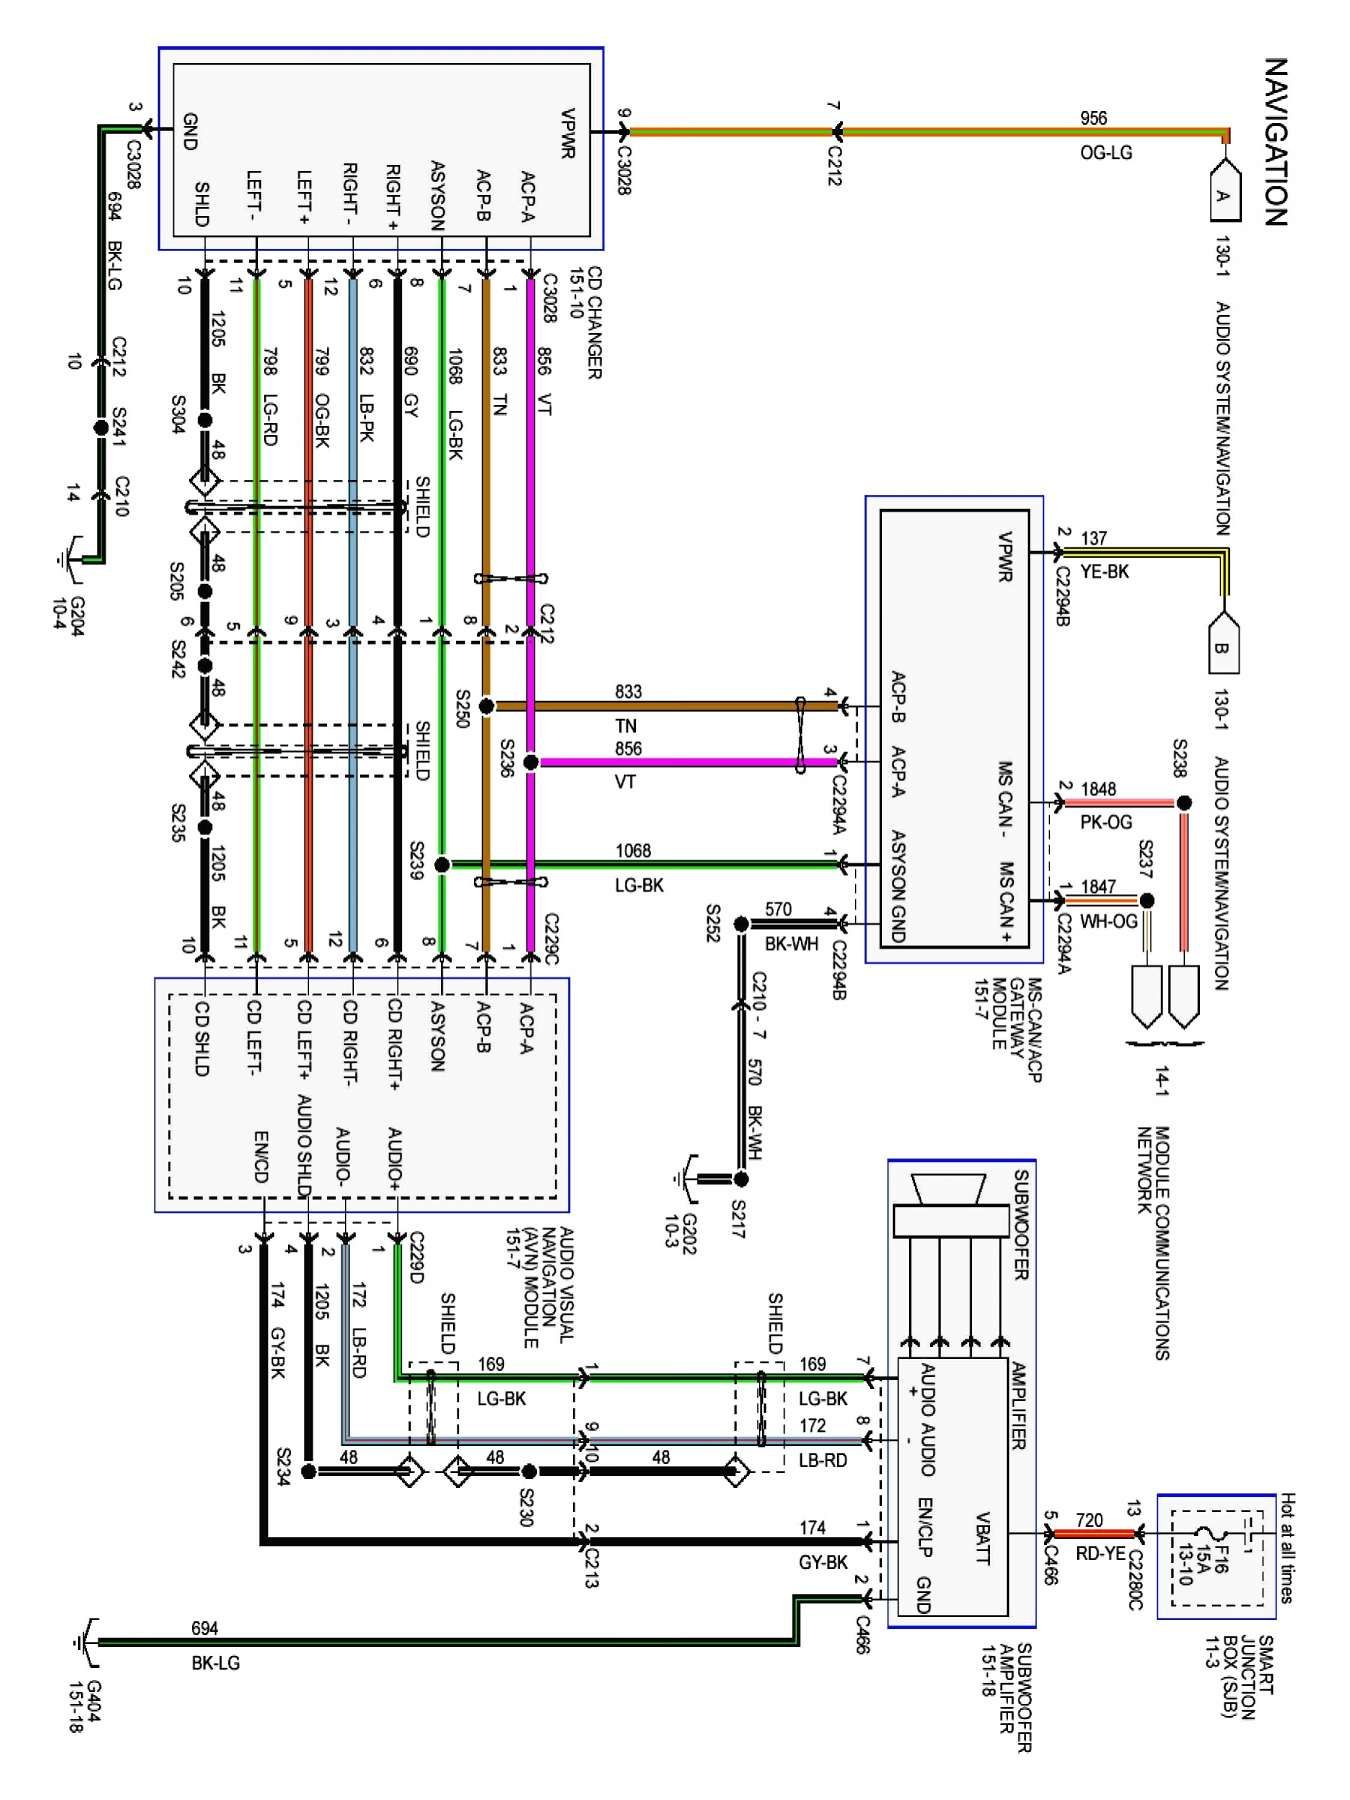 16+ Rusi Motorcycle Wiring Diagram - Motorcycle Diagram - Wiringg.net in  2020 | Ford expedition, Electrical wiring diagram, Electrical diagramwww.pinterest.ph